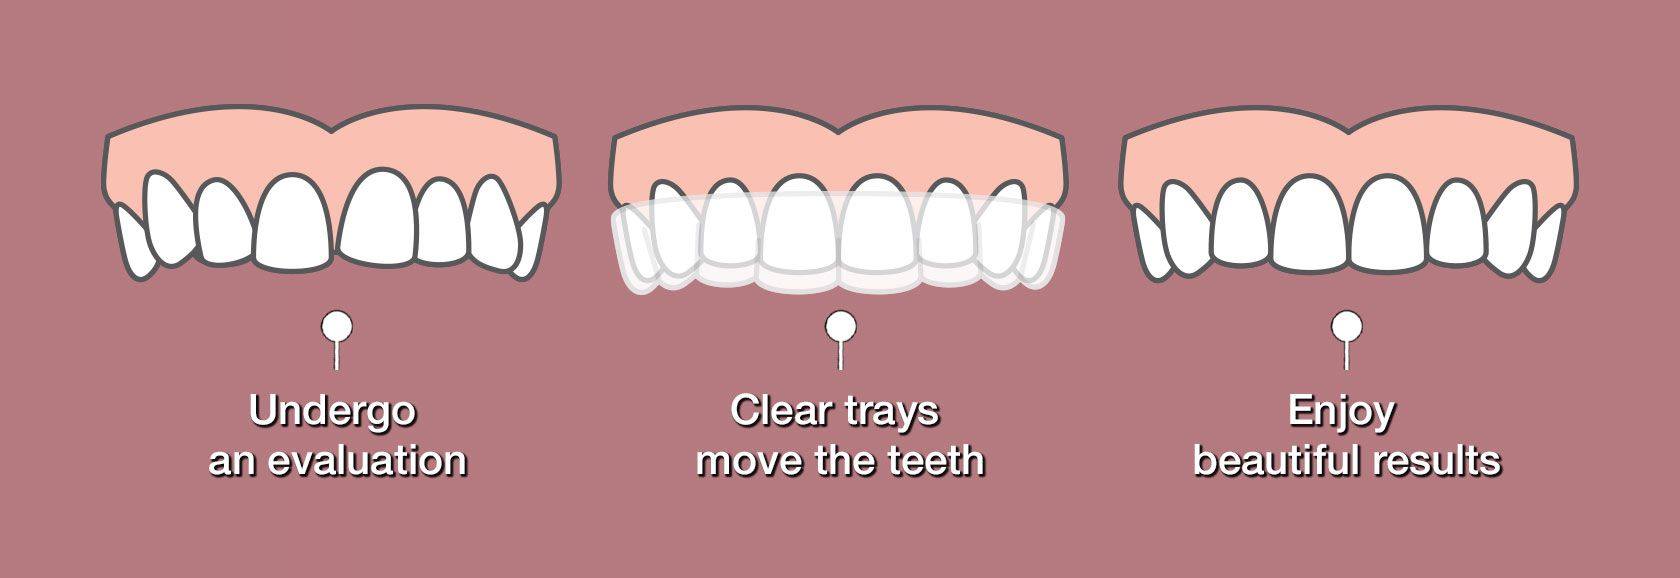 Illustration of stages of Invisalign treatment